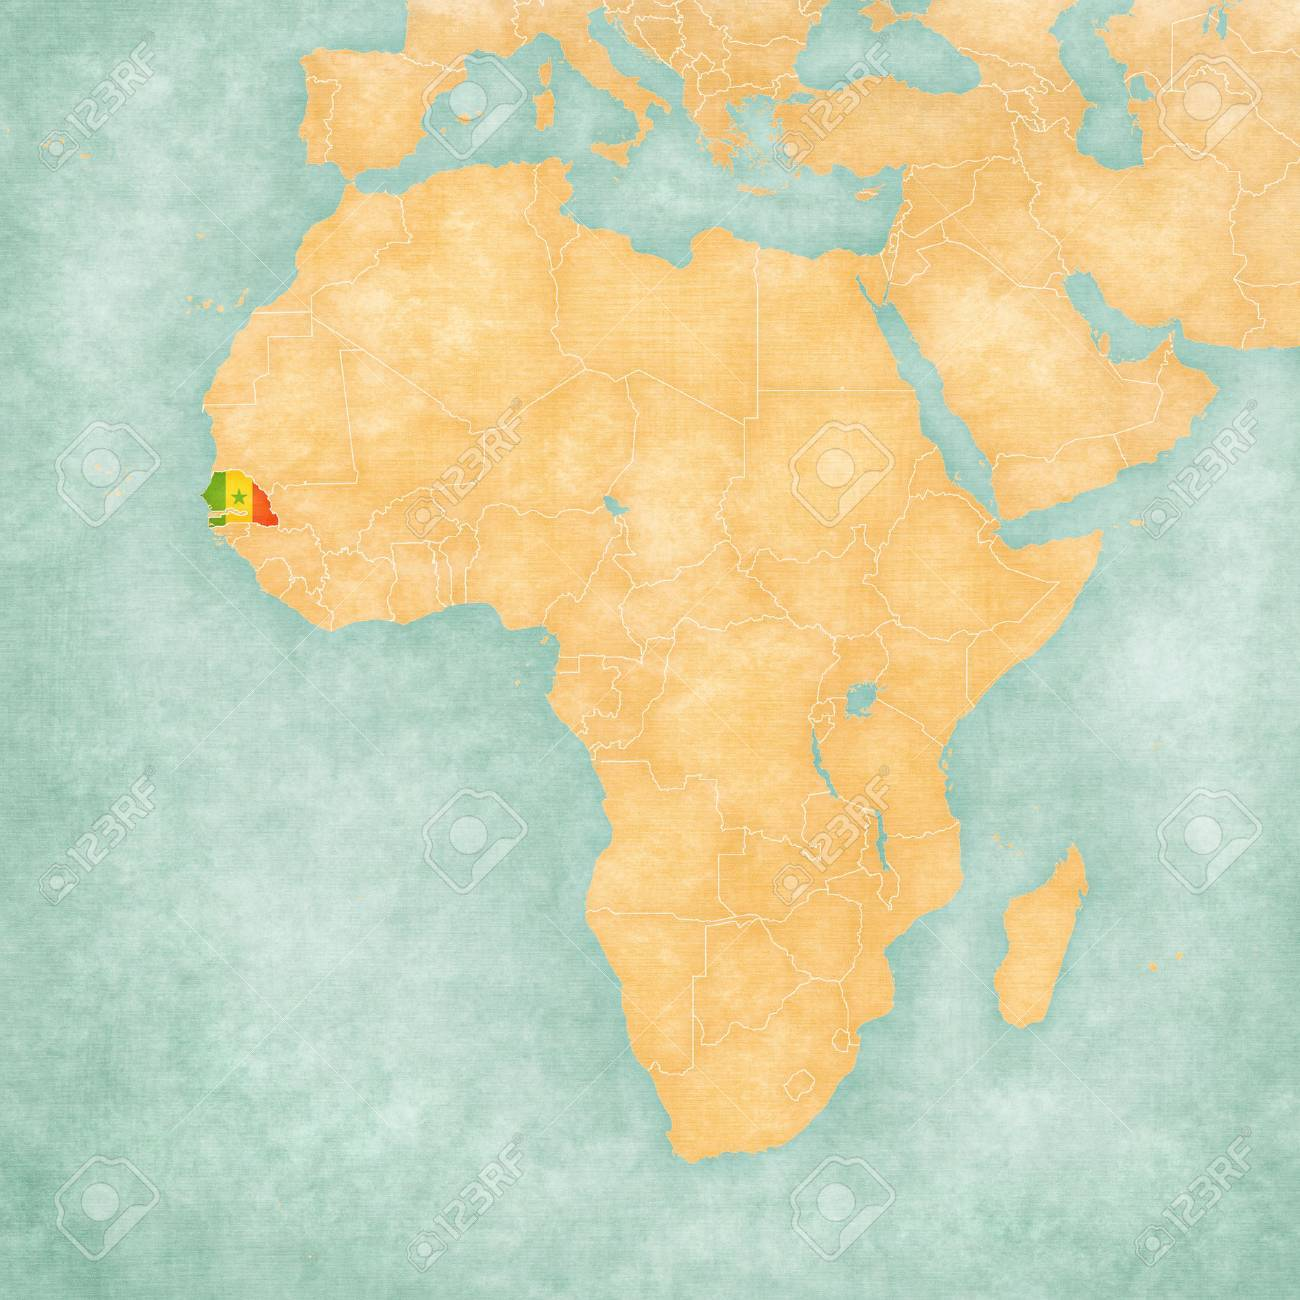 Senegal On Africa Map.Senegal Senegalese Flag On The Map Of Africa The Map Is In